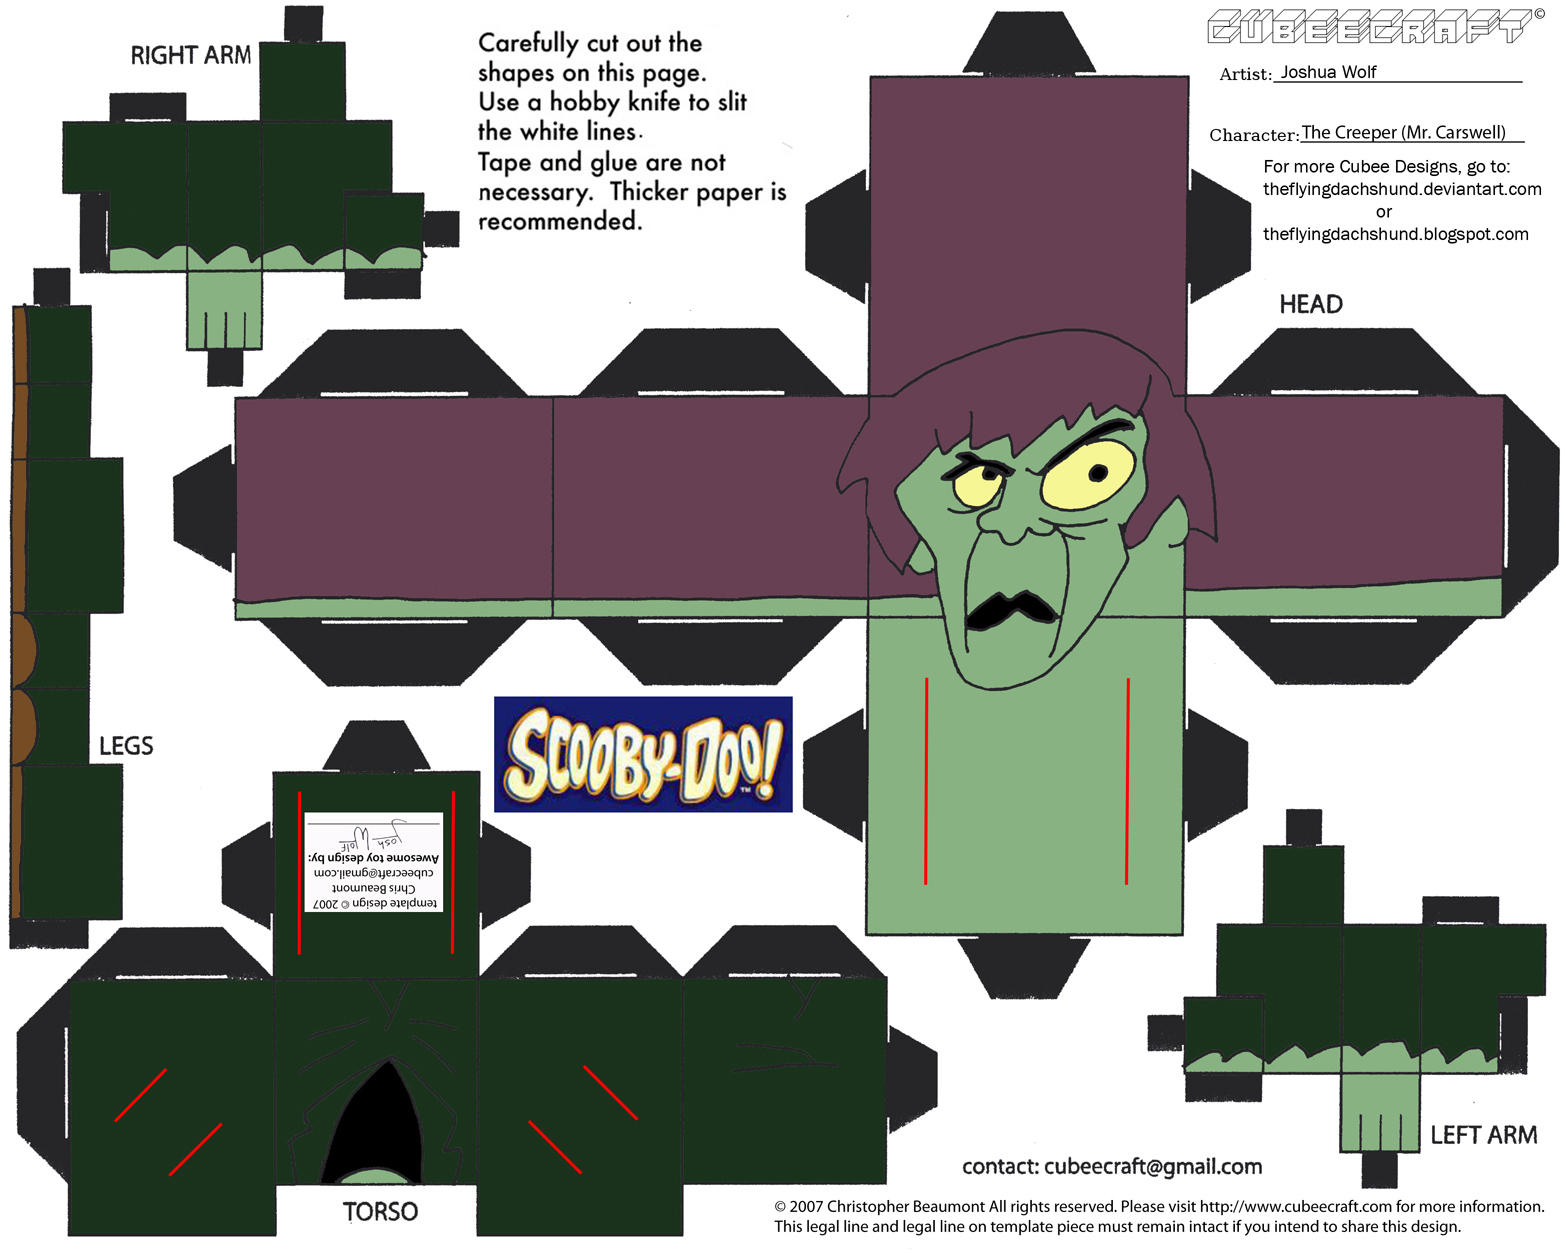 sd3 the creeper cubee by theflyingdachshund on deviantart